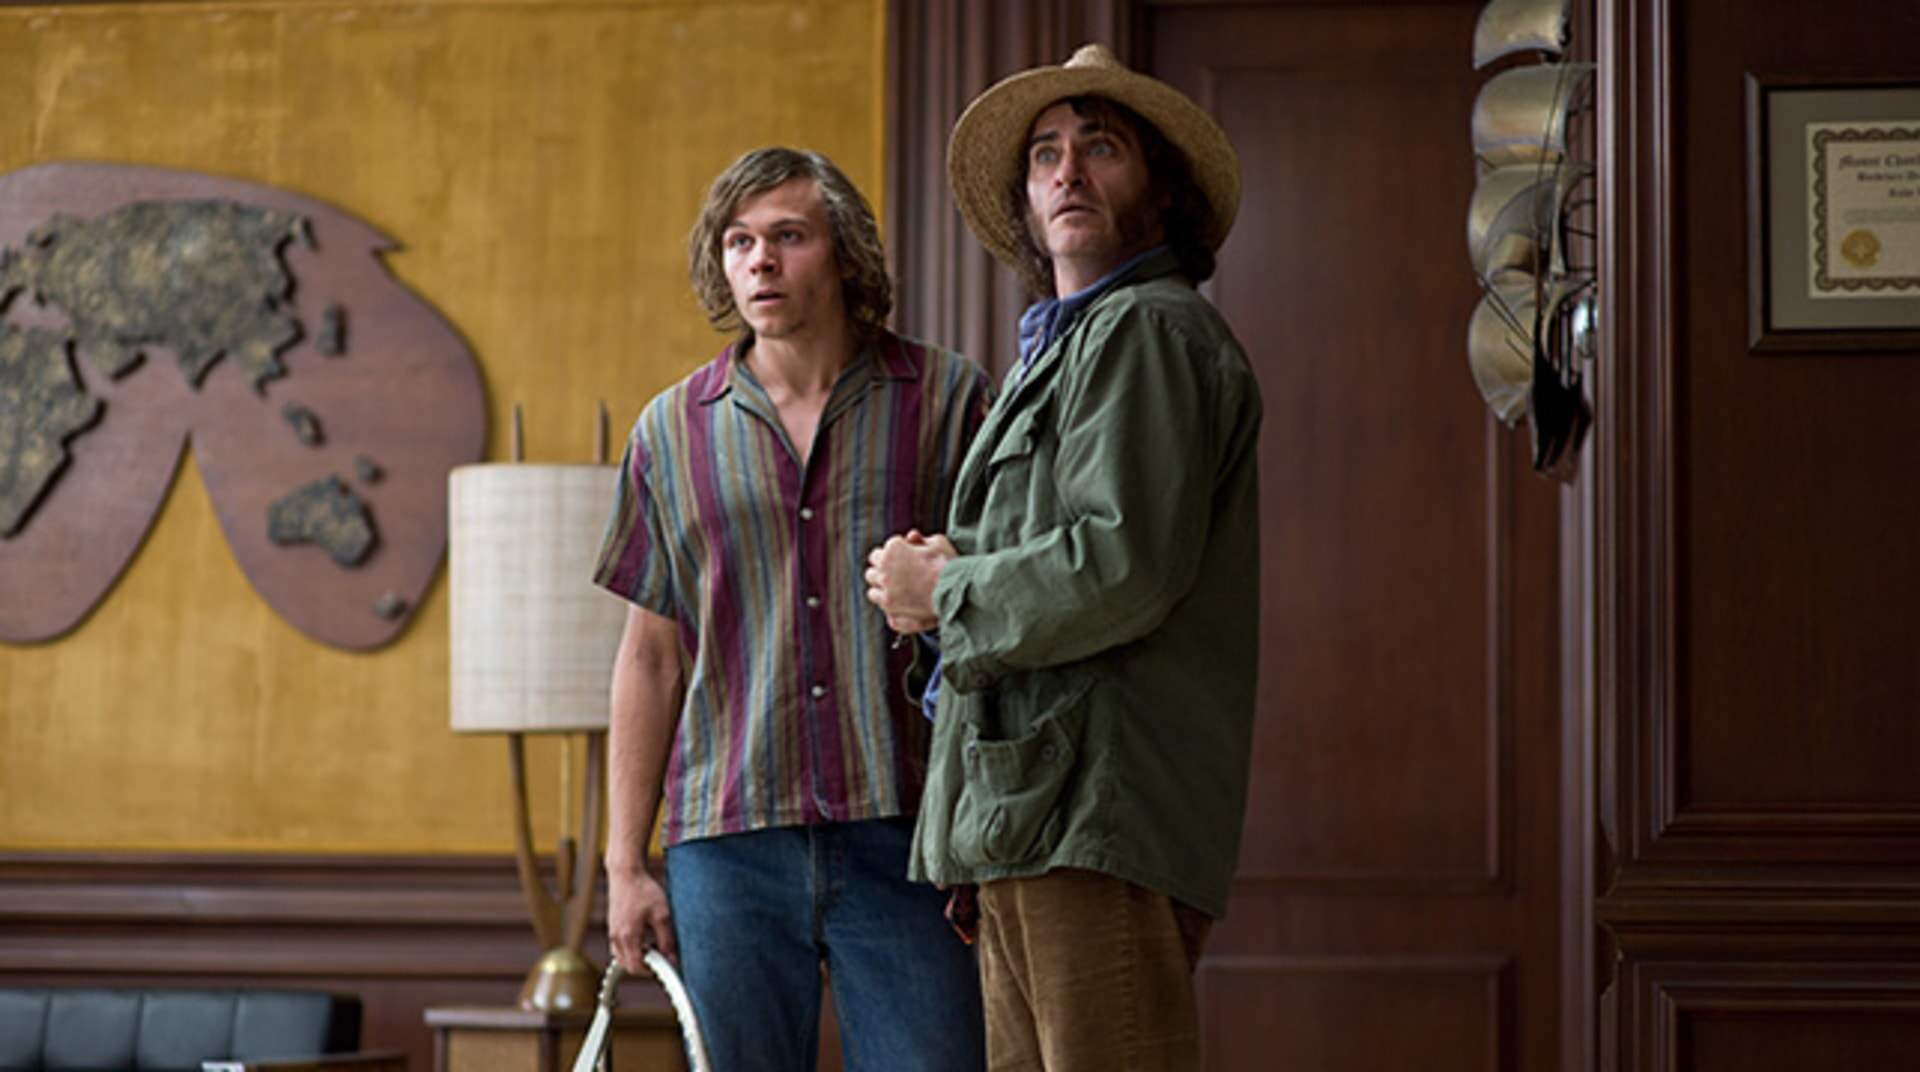 Inherent Vice - Image 16